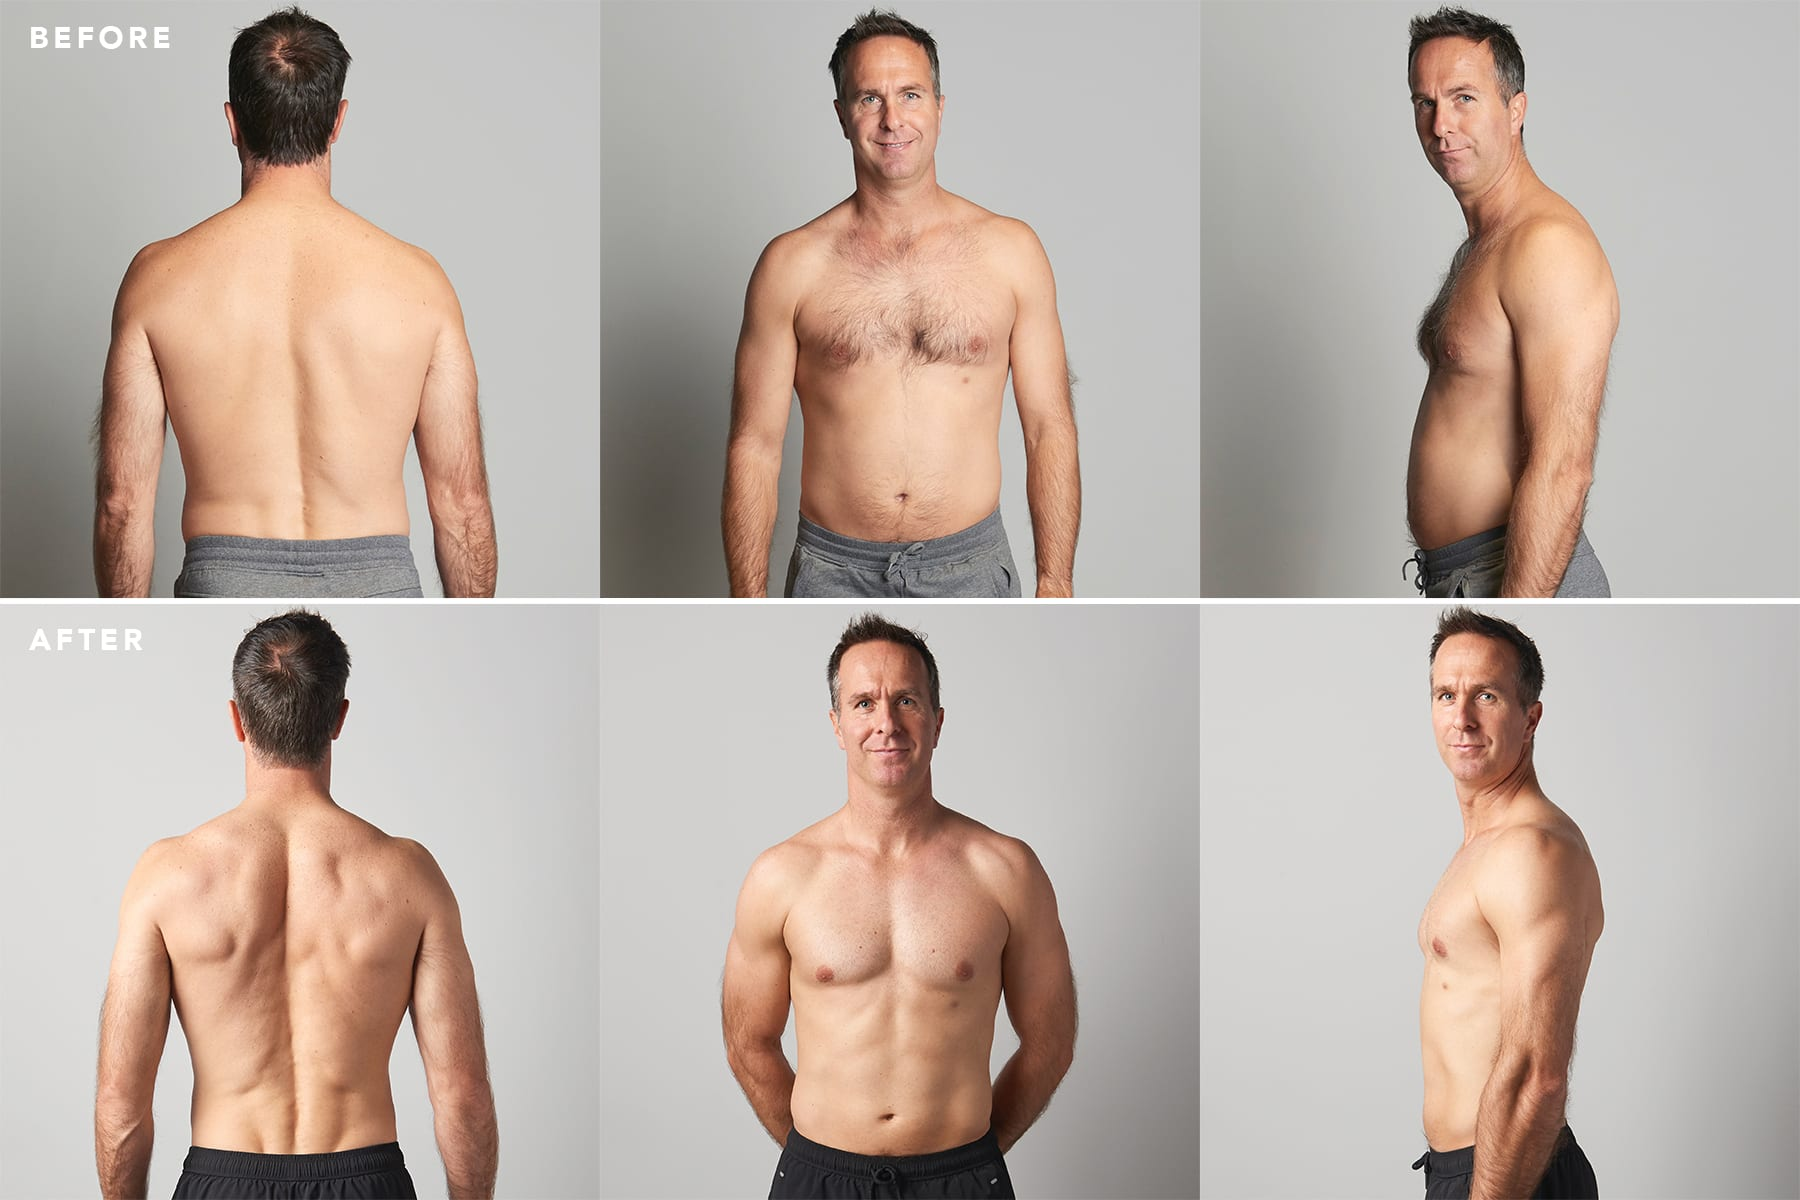 Michael Vaughan's 12 Week Body Transformation with Myprotein